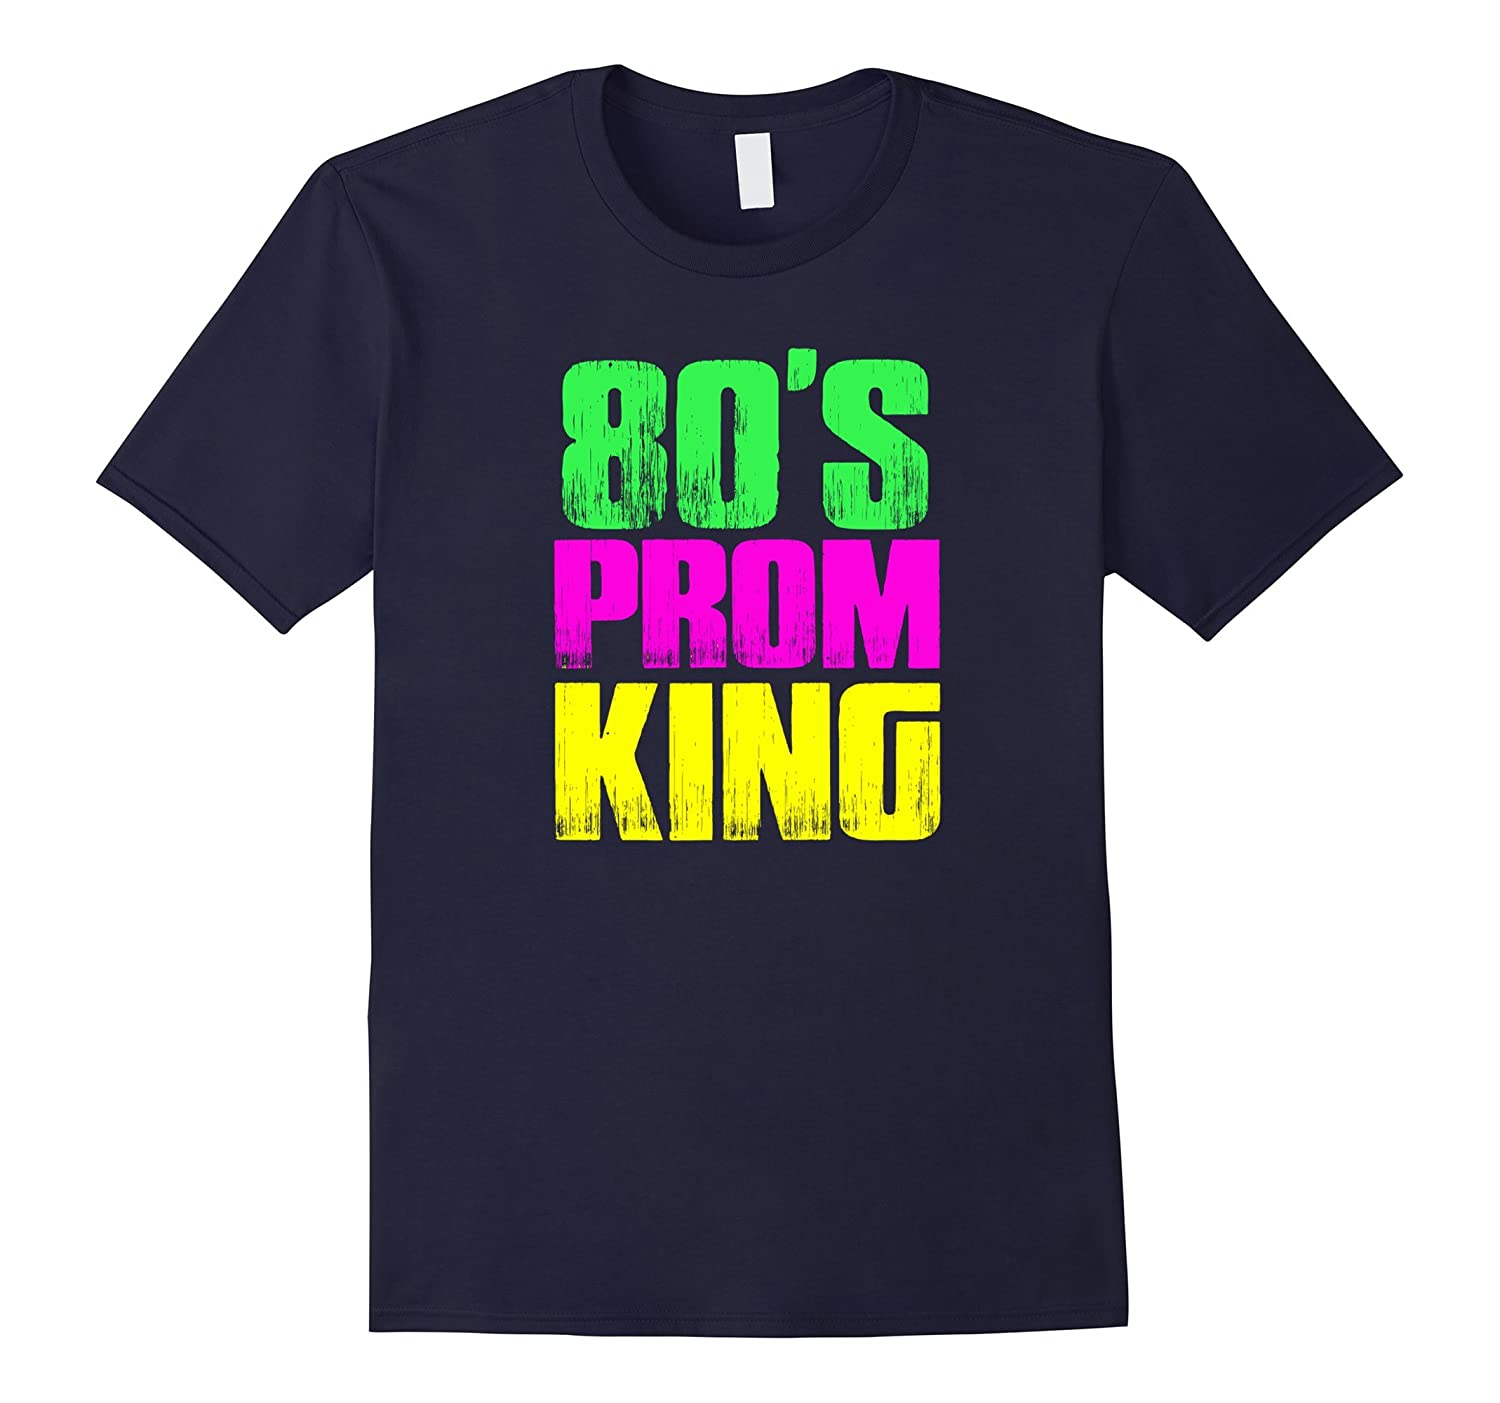 Mens Mens 80s Prom King Eighties Neon Party Shirt Costume Td Teedep